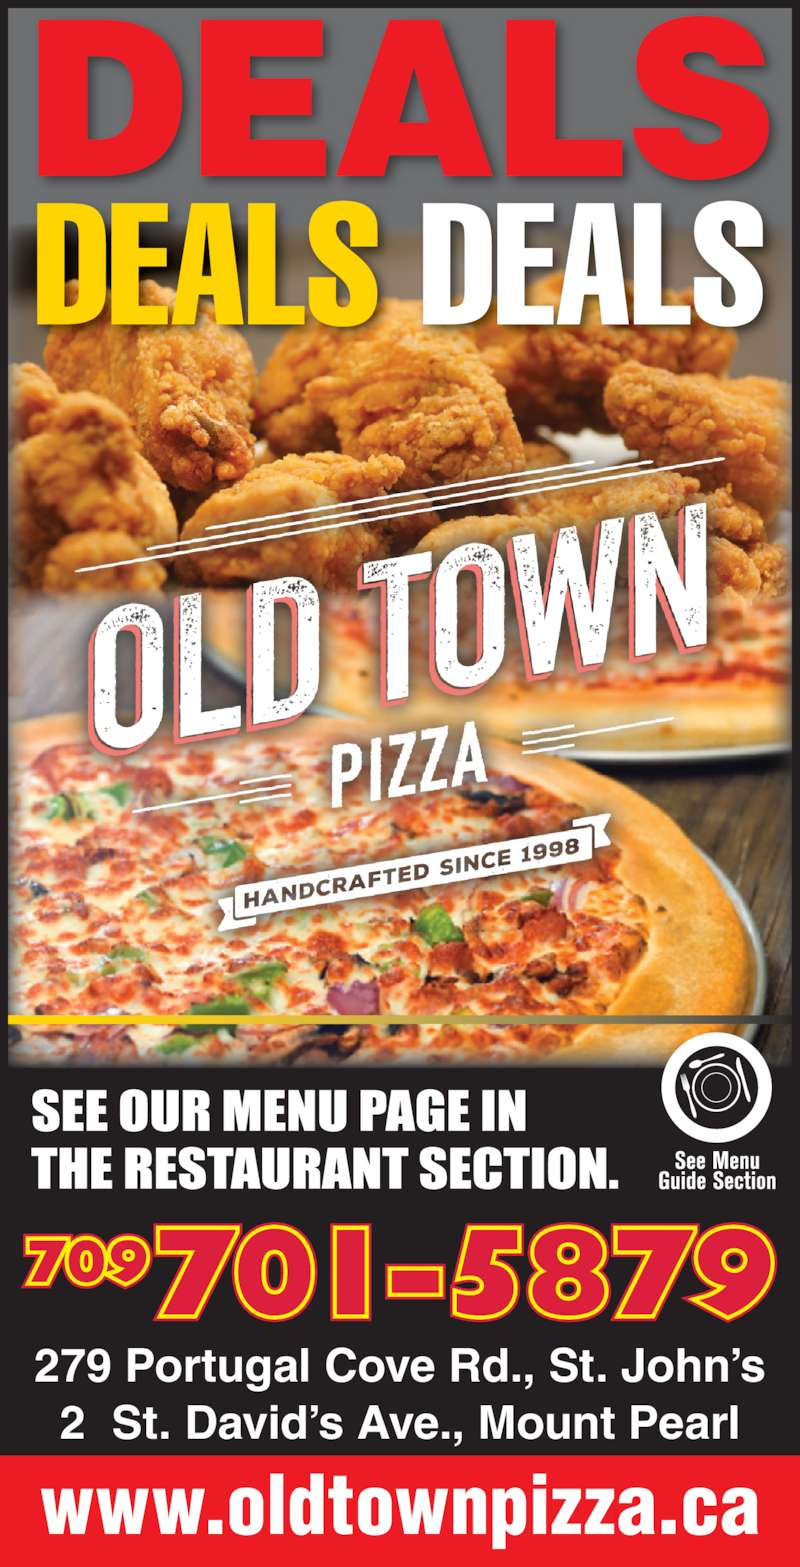 Old Town Pizzeria (7097381234) - Annonce illustrée======= - 279 Portugal Cove Rd., St. John's 2  St. David's Ave., Mount Pearl DEALS DEALS DEALS www.oldtownpizza.ca 709701-5879